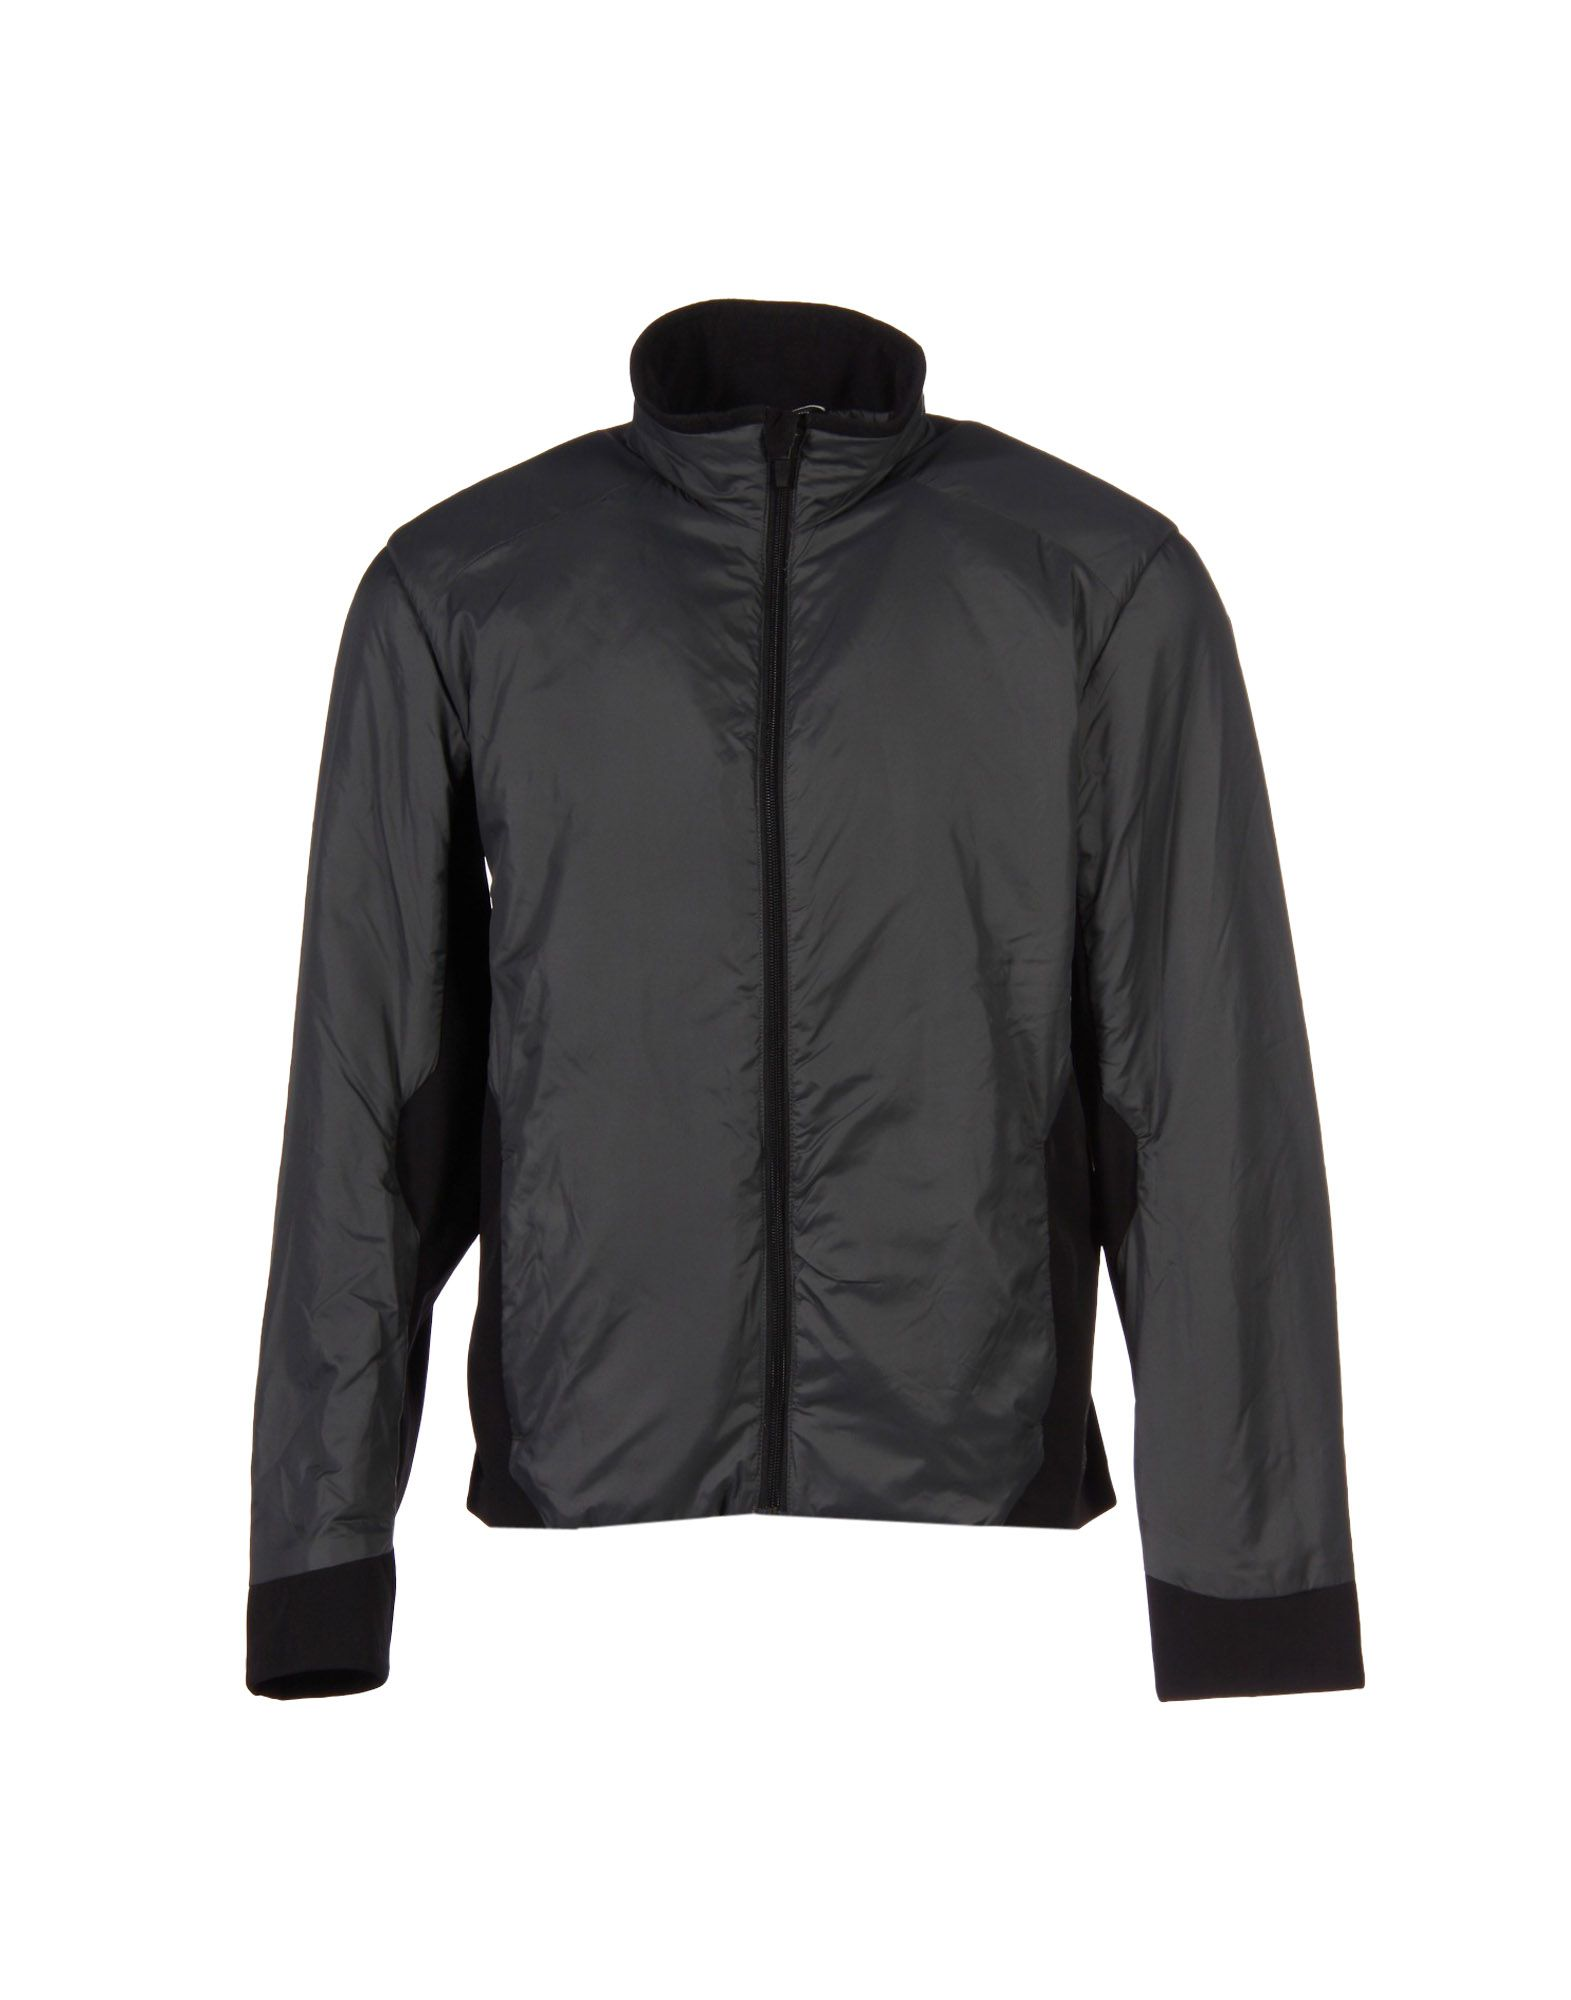 AETHER Boundary Panelled Padded Bomber Jacket in Charcoal